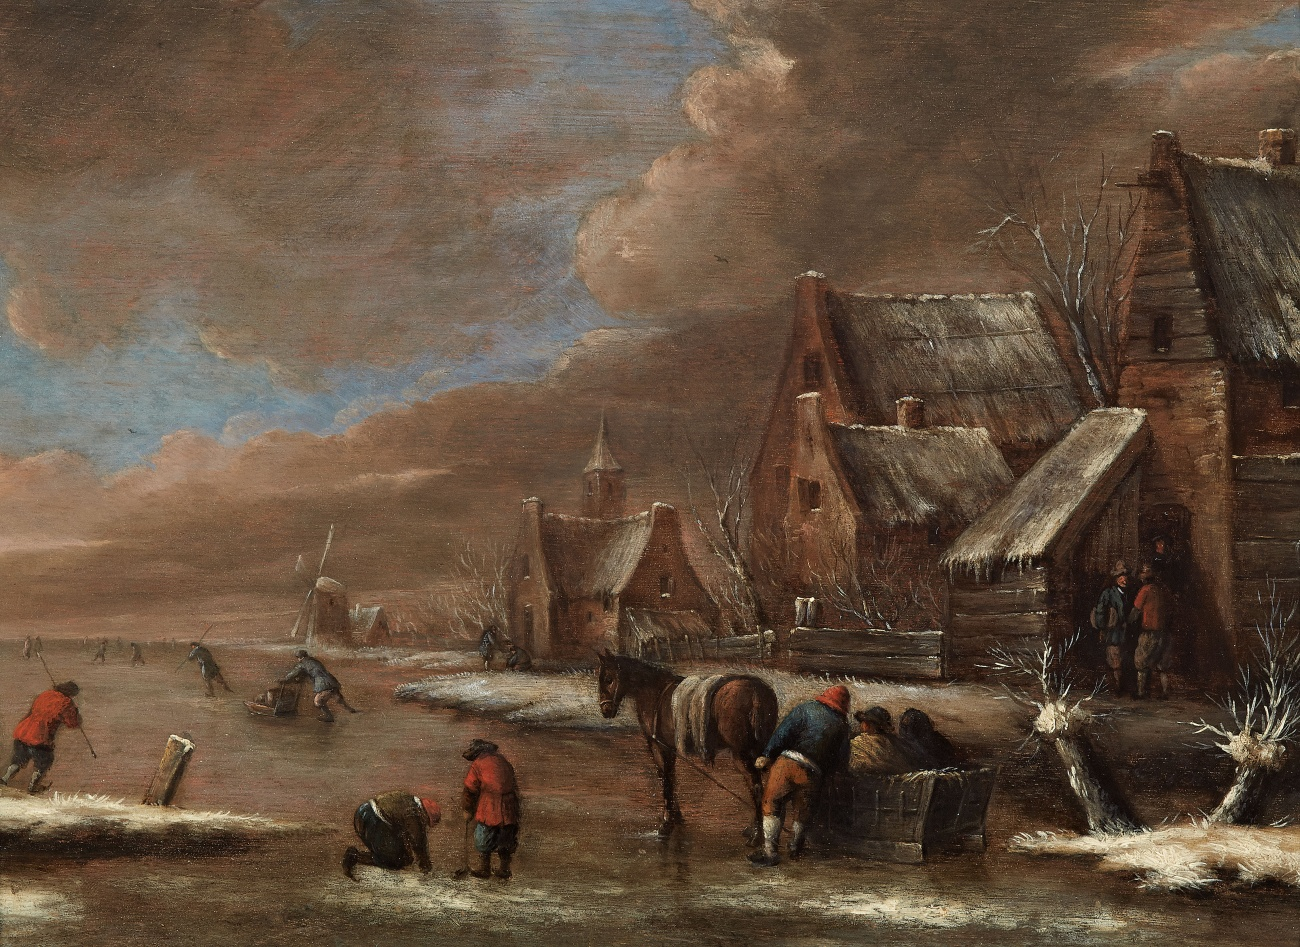 Lempertz-1074-70-Paintings-15th-19th-C-Nicolaes-Klaes-Molenaer-Village-Winter-Landscape-with-Ice-Skaters